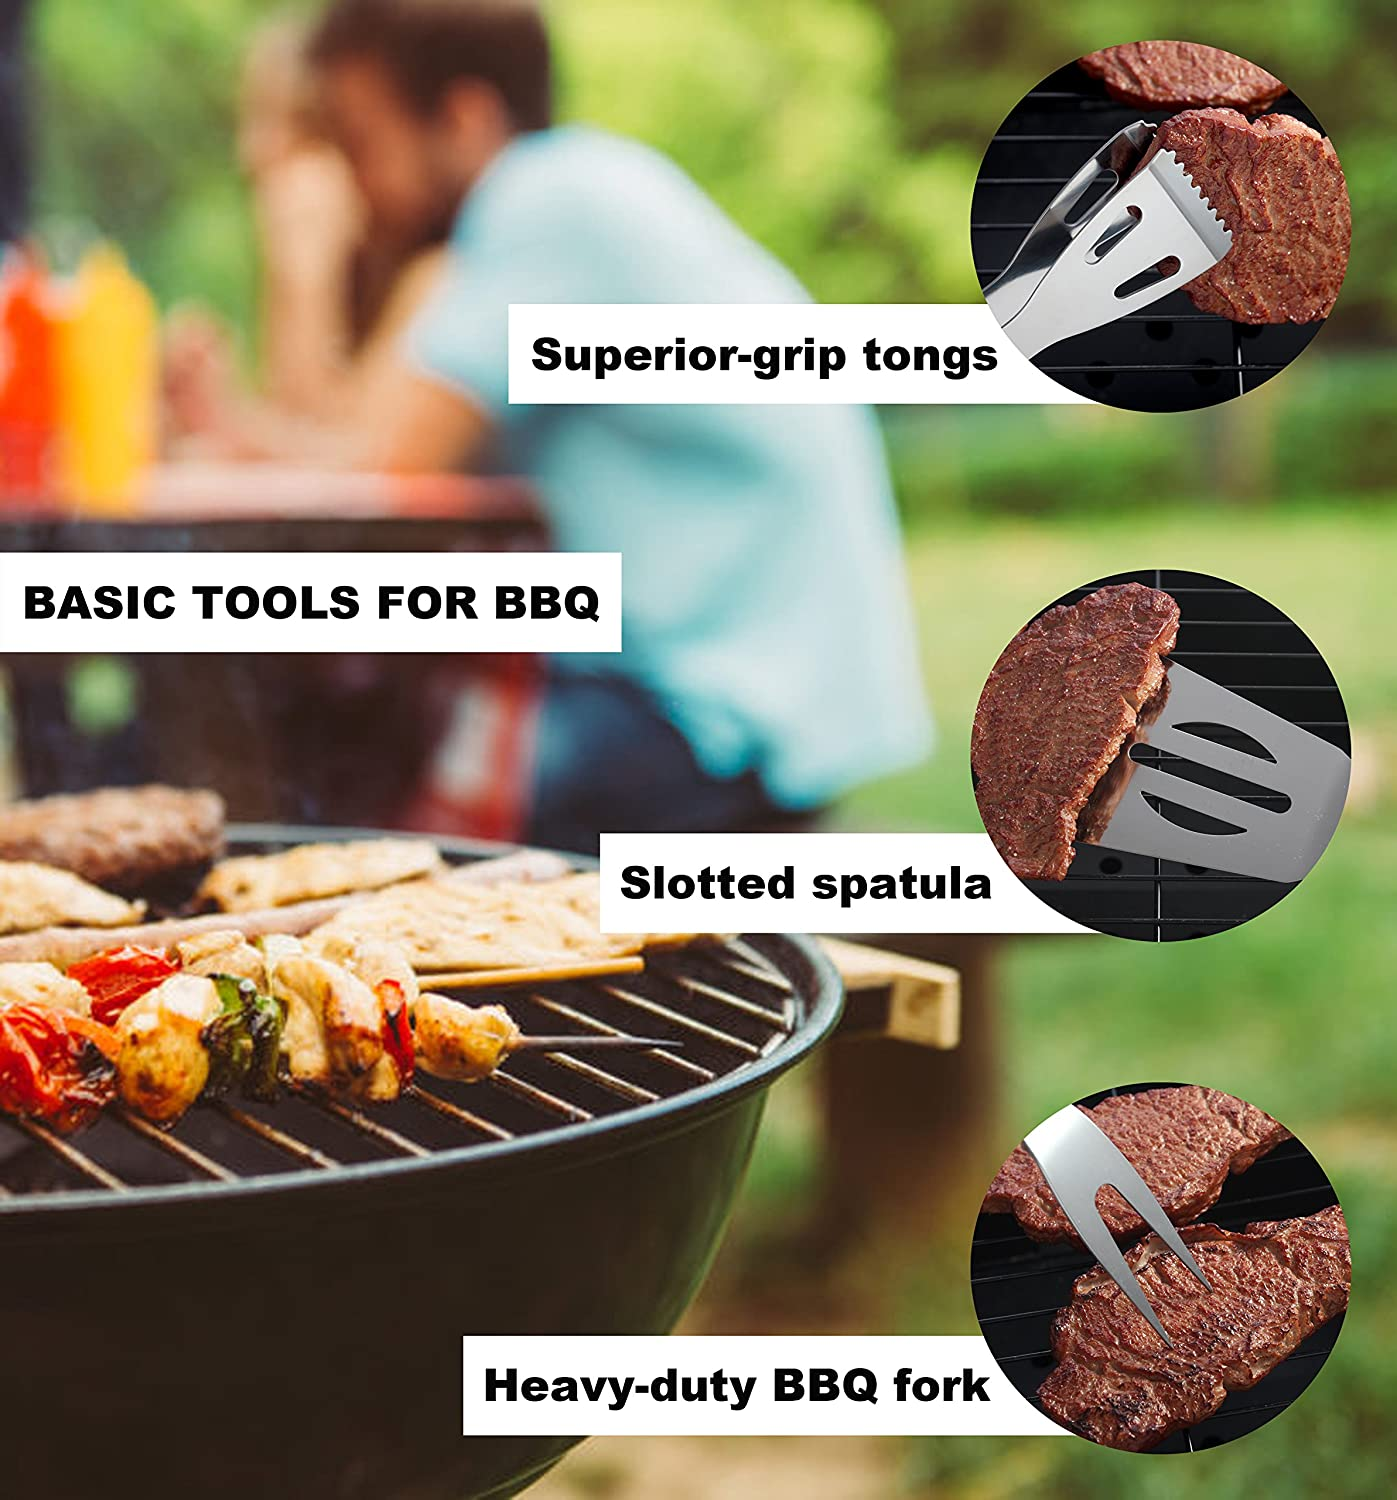 Great Grill Gift Set for Men Dad on Fathers Day ROMANTICIST 20pc Heavy Duty BBQ Grill Tool Set with Cooler Bag Outdoor Camping Tailgating Barbecue Grill Accessories in Aluminum Case